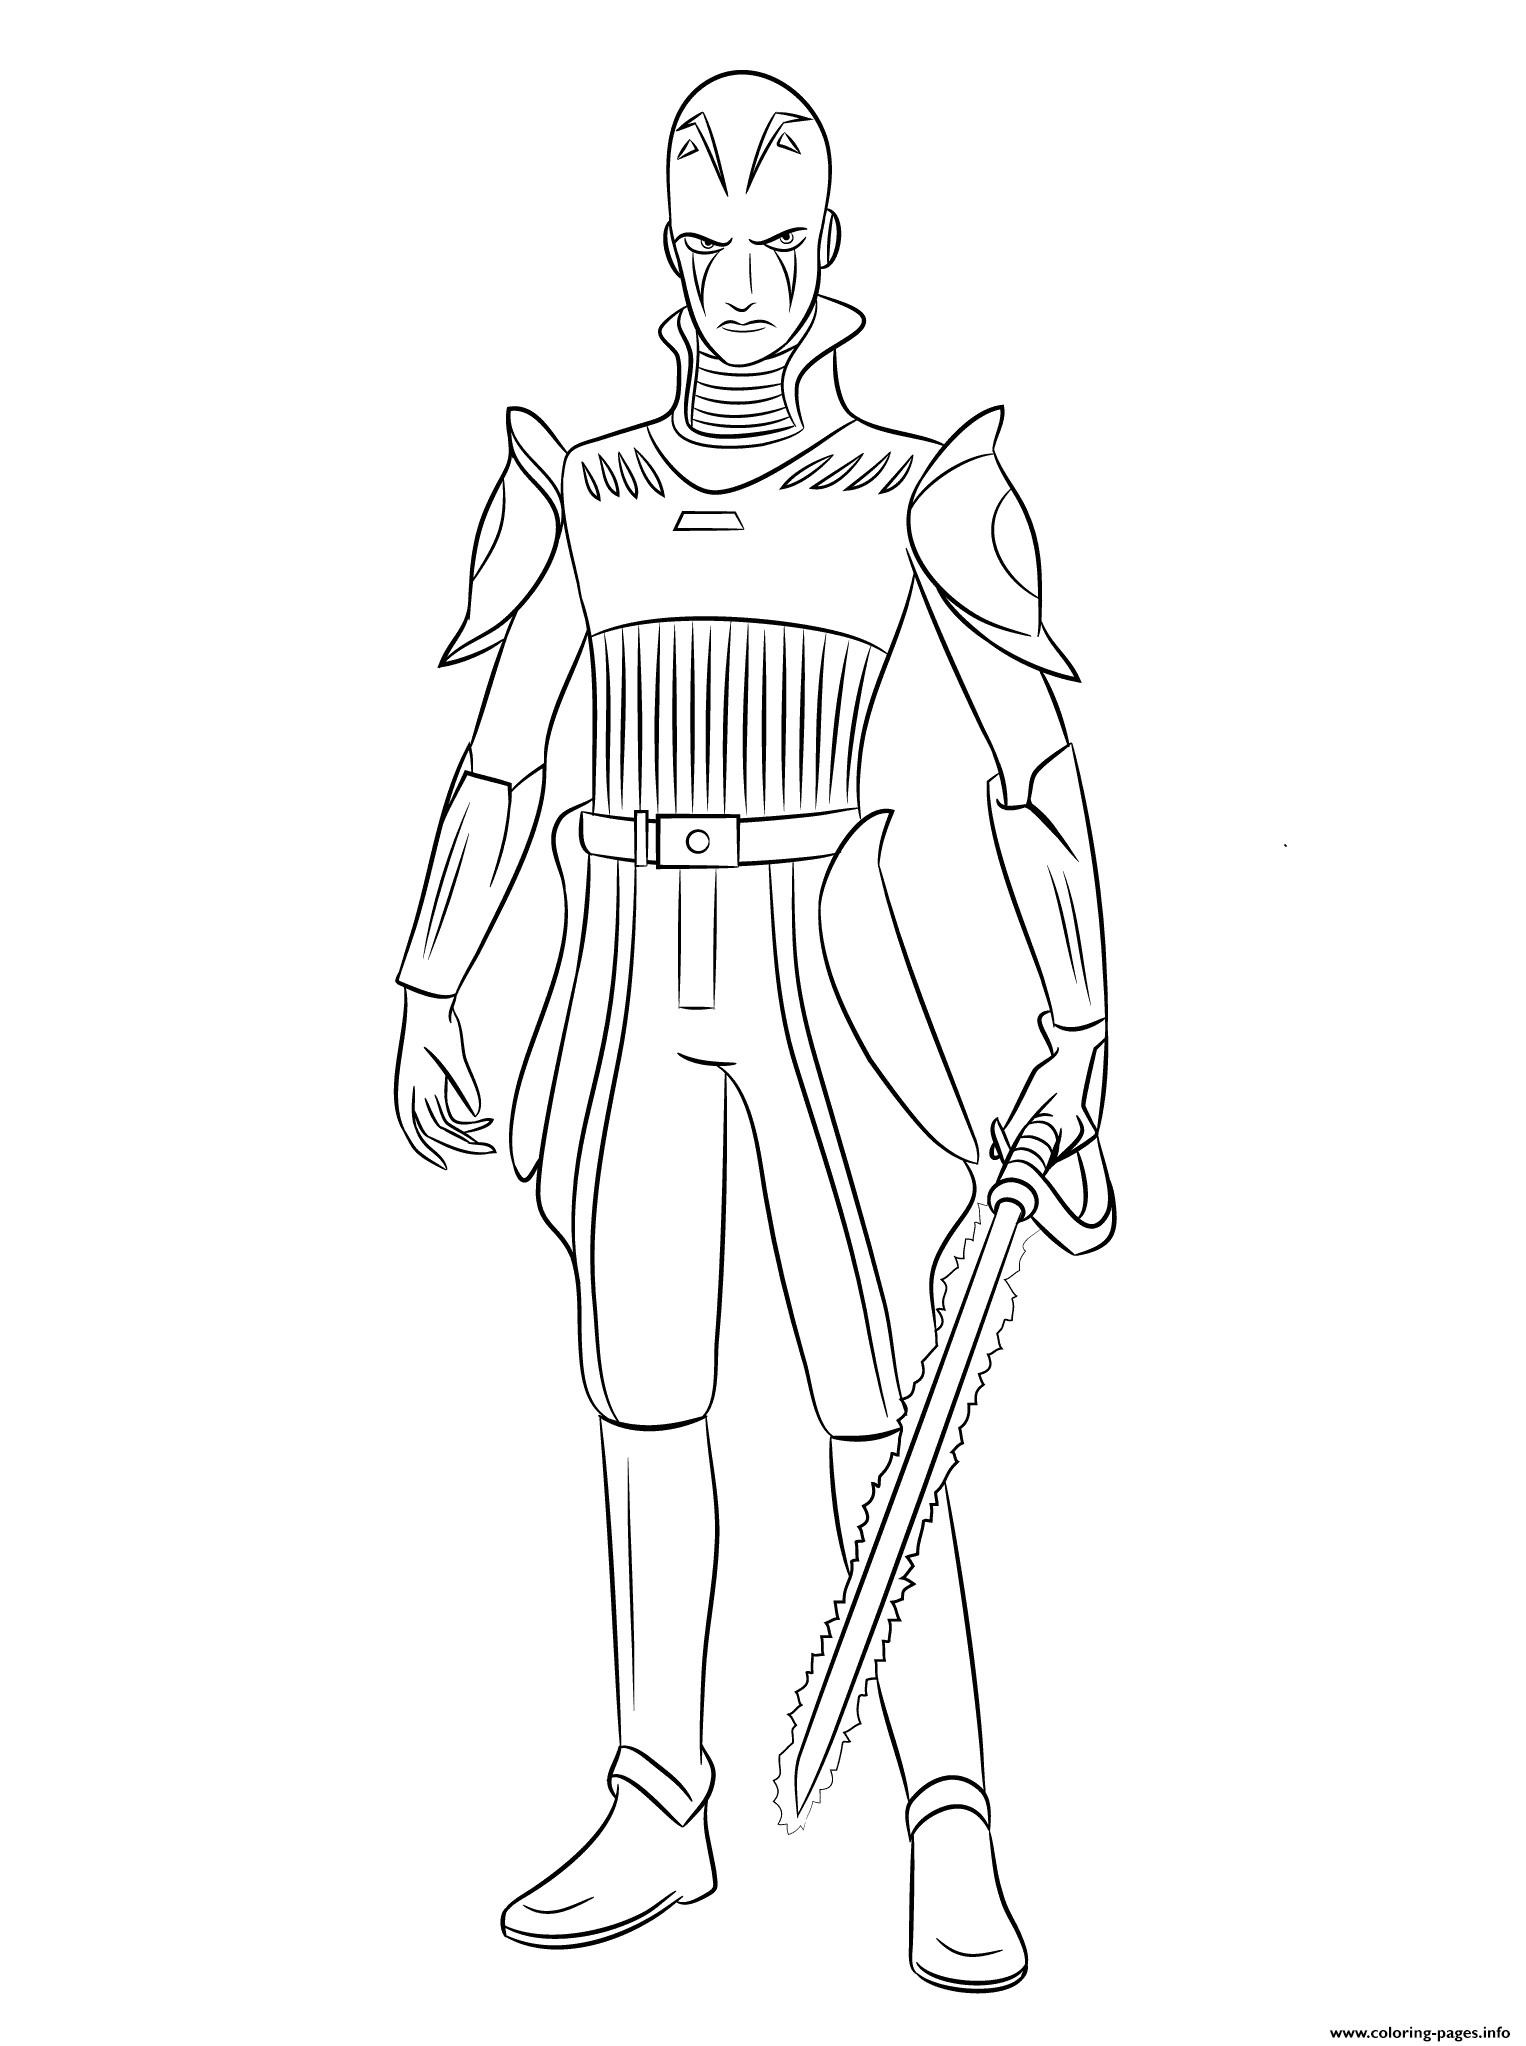 Star Wars Rebels Inquisitors coloring pages